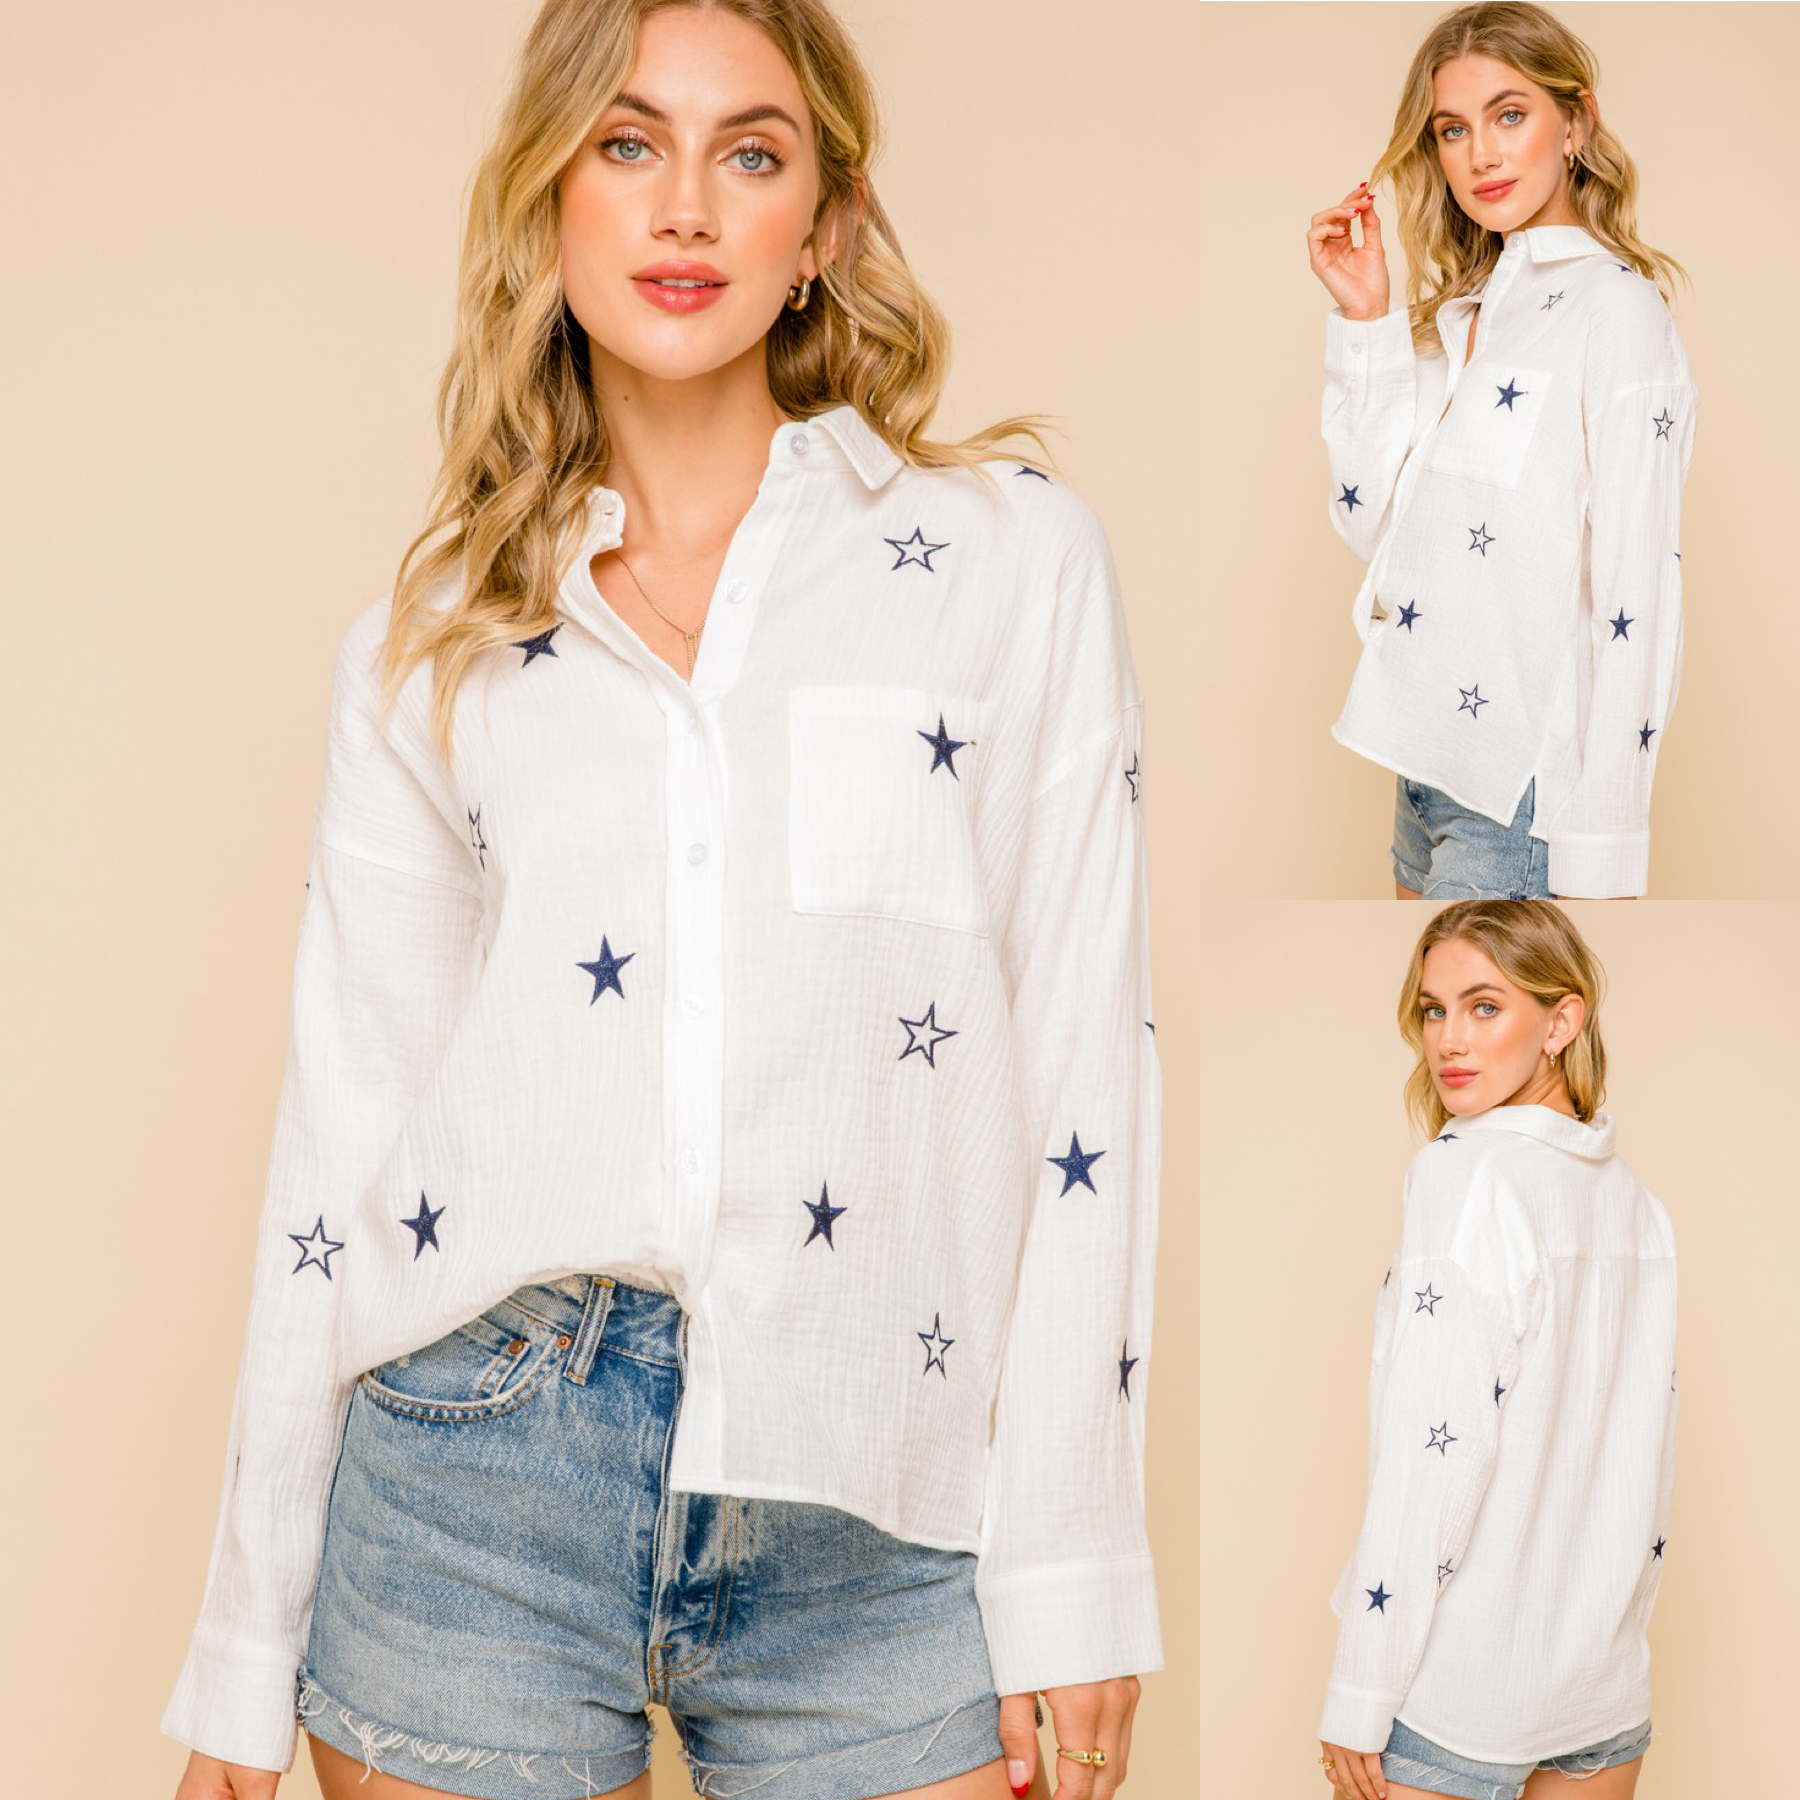 Star Embroidered Button Down Top